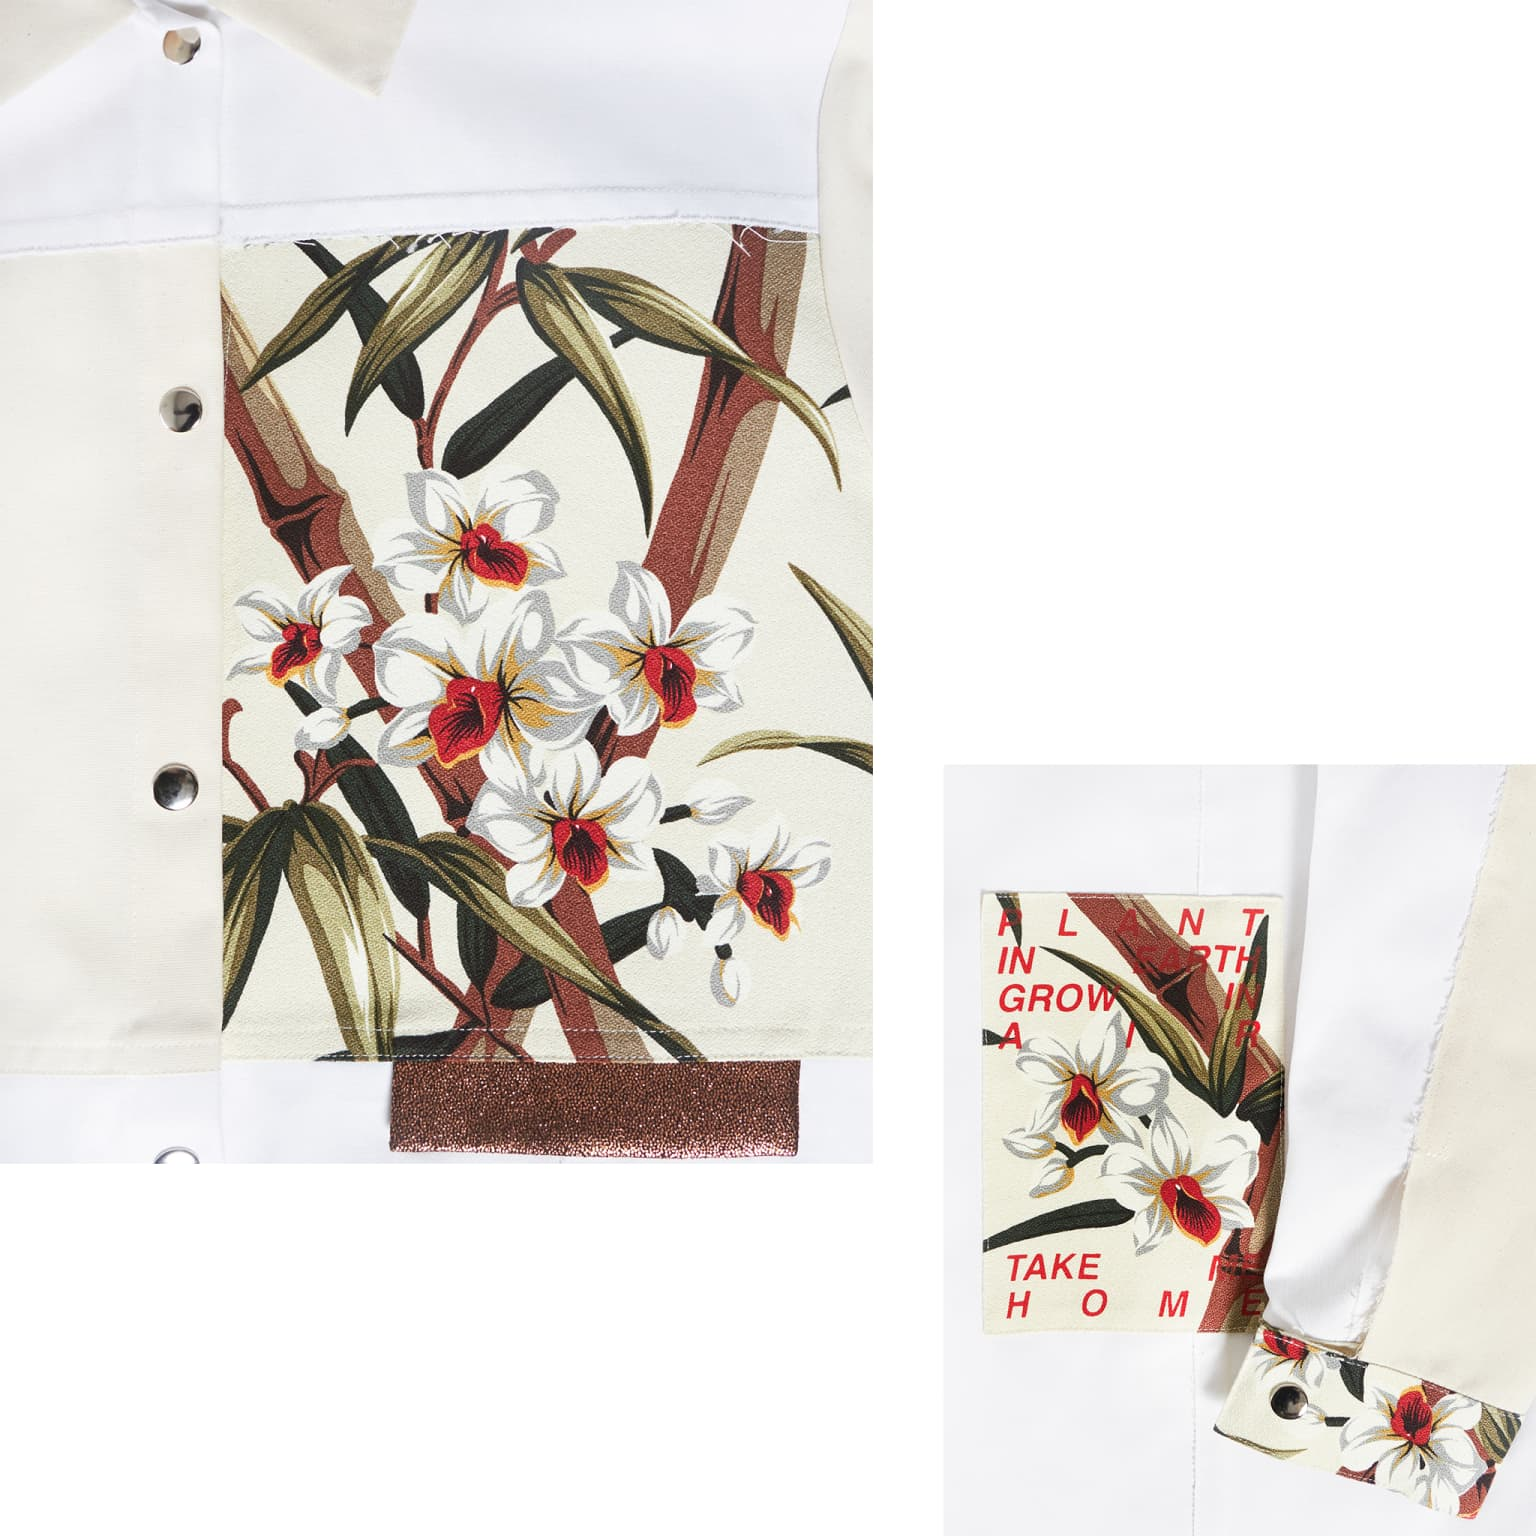 Select Product Imagery